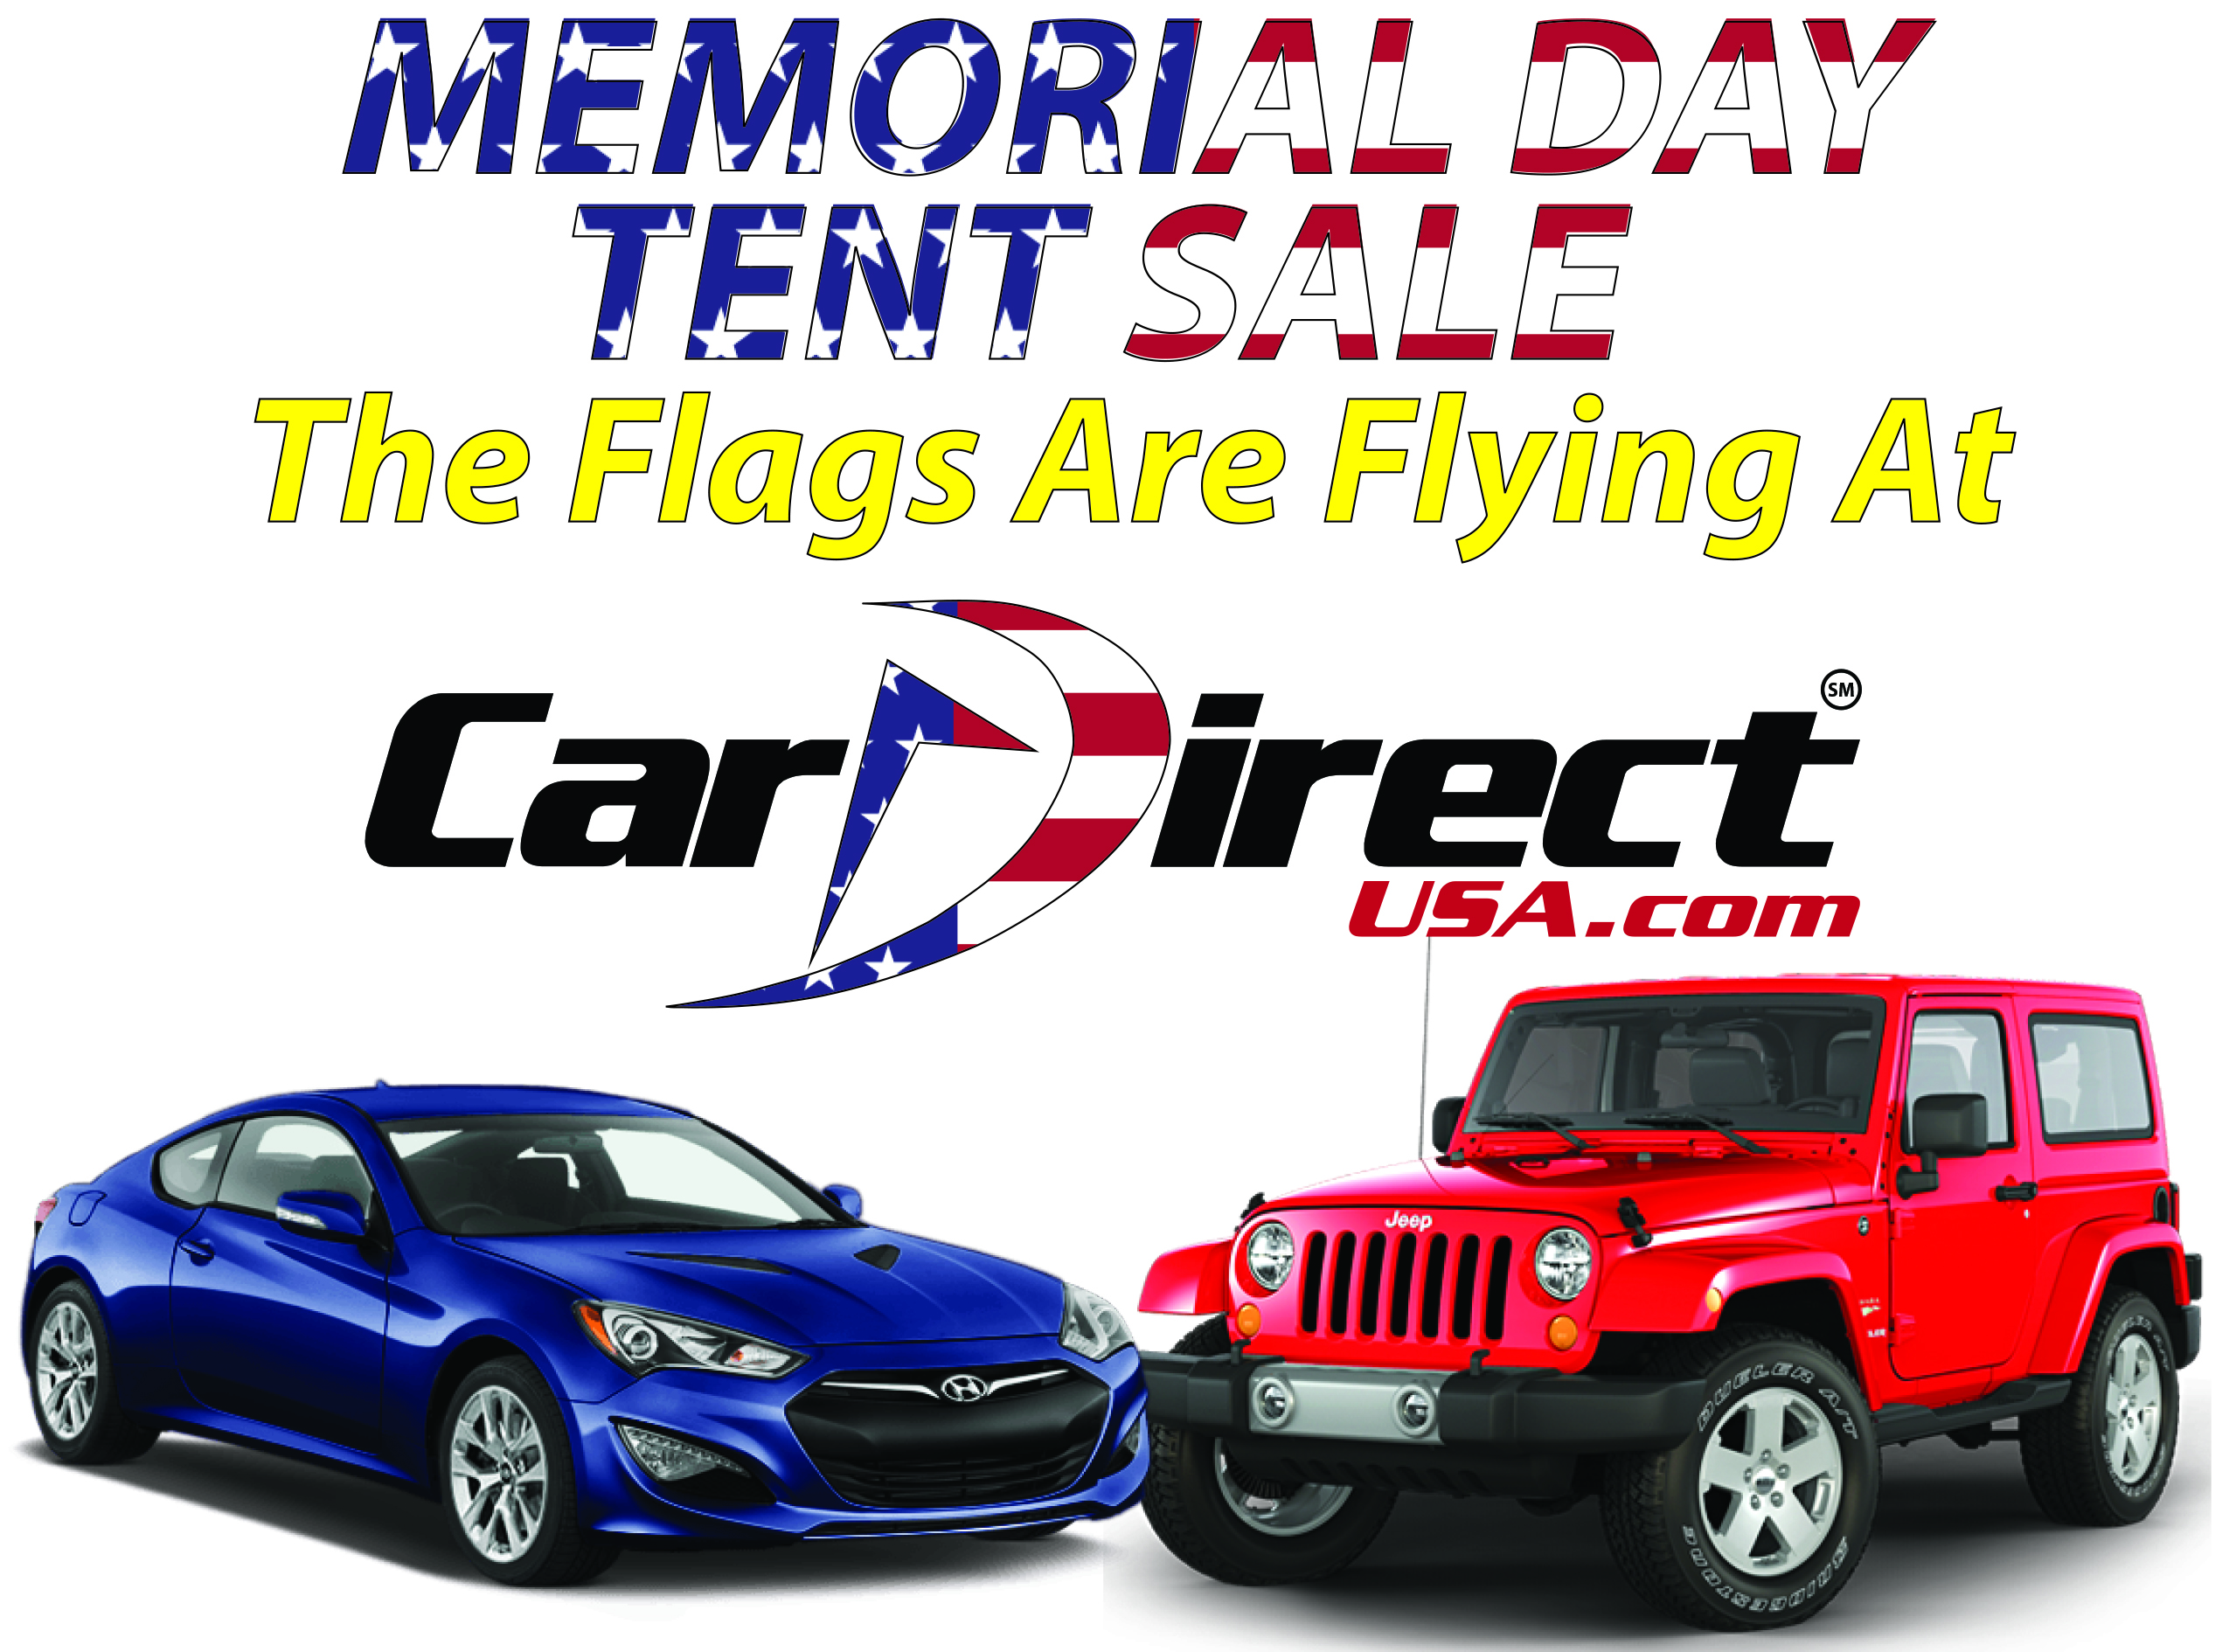 The Flags Are Flying Car Direct LLC